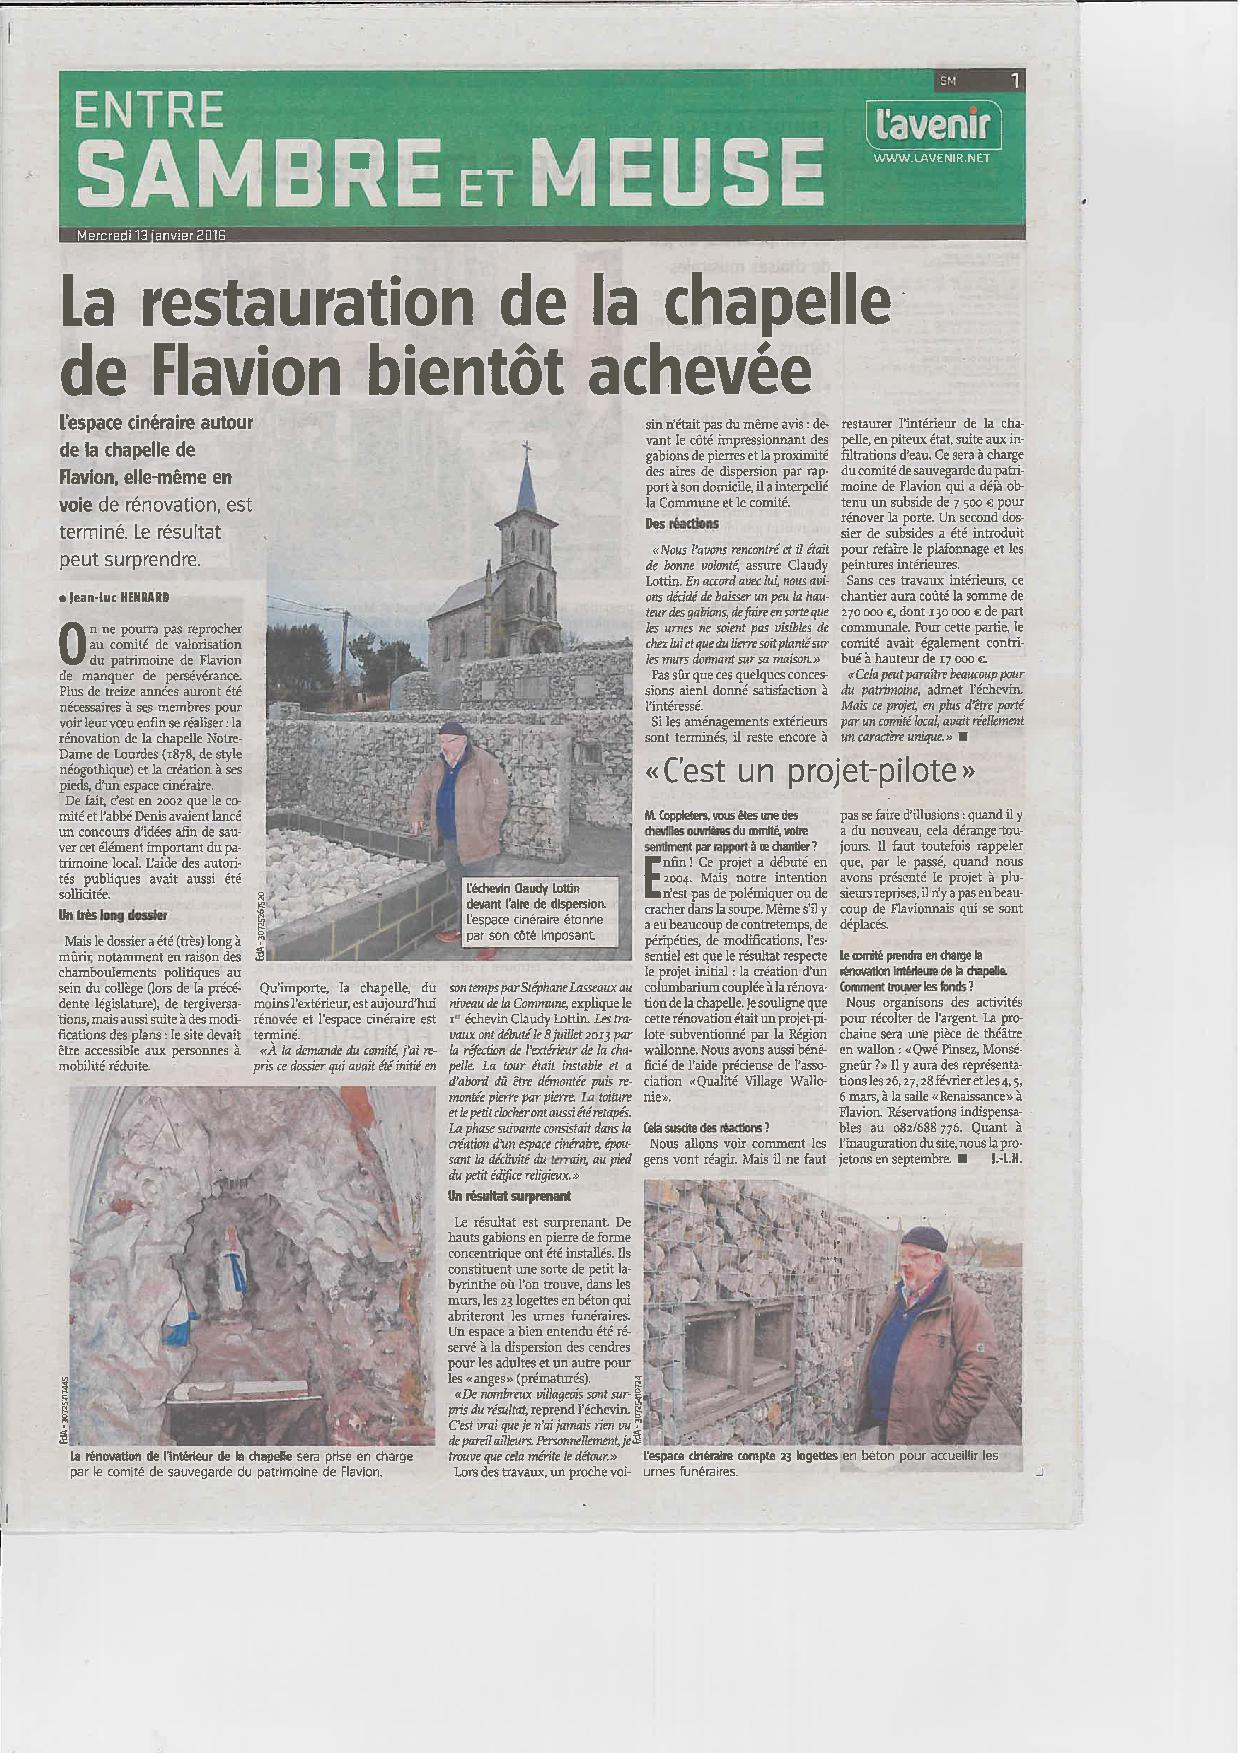 Article VA 13/01/2016 chapelle et columbarium